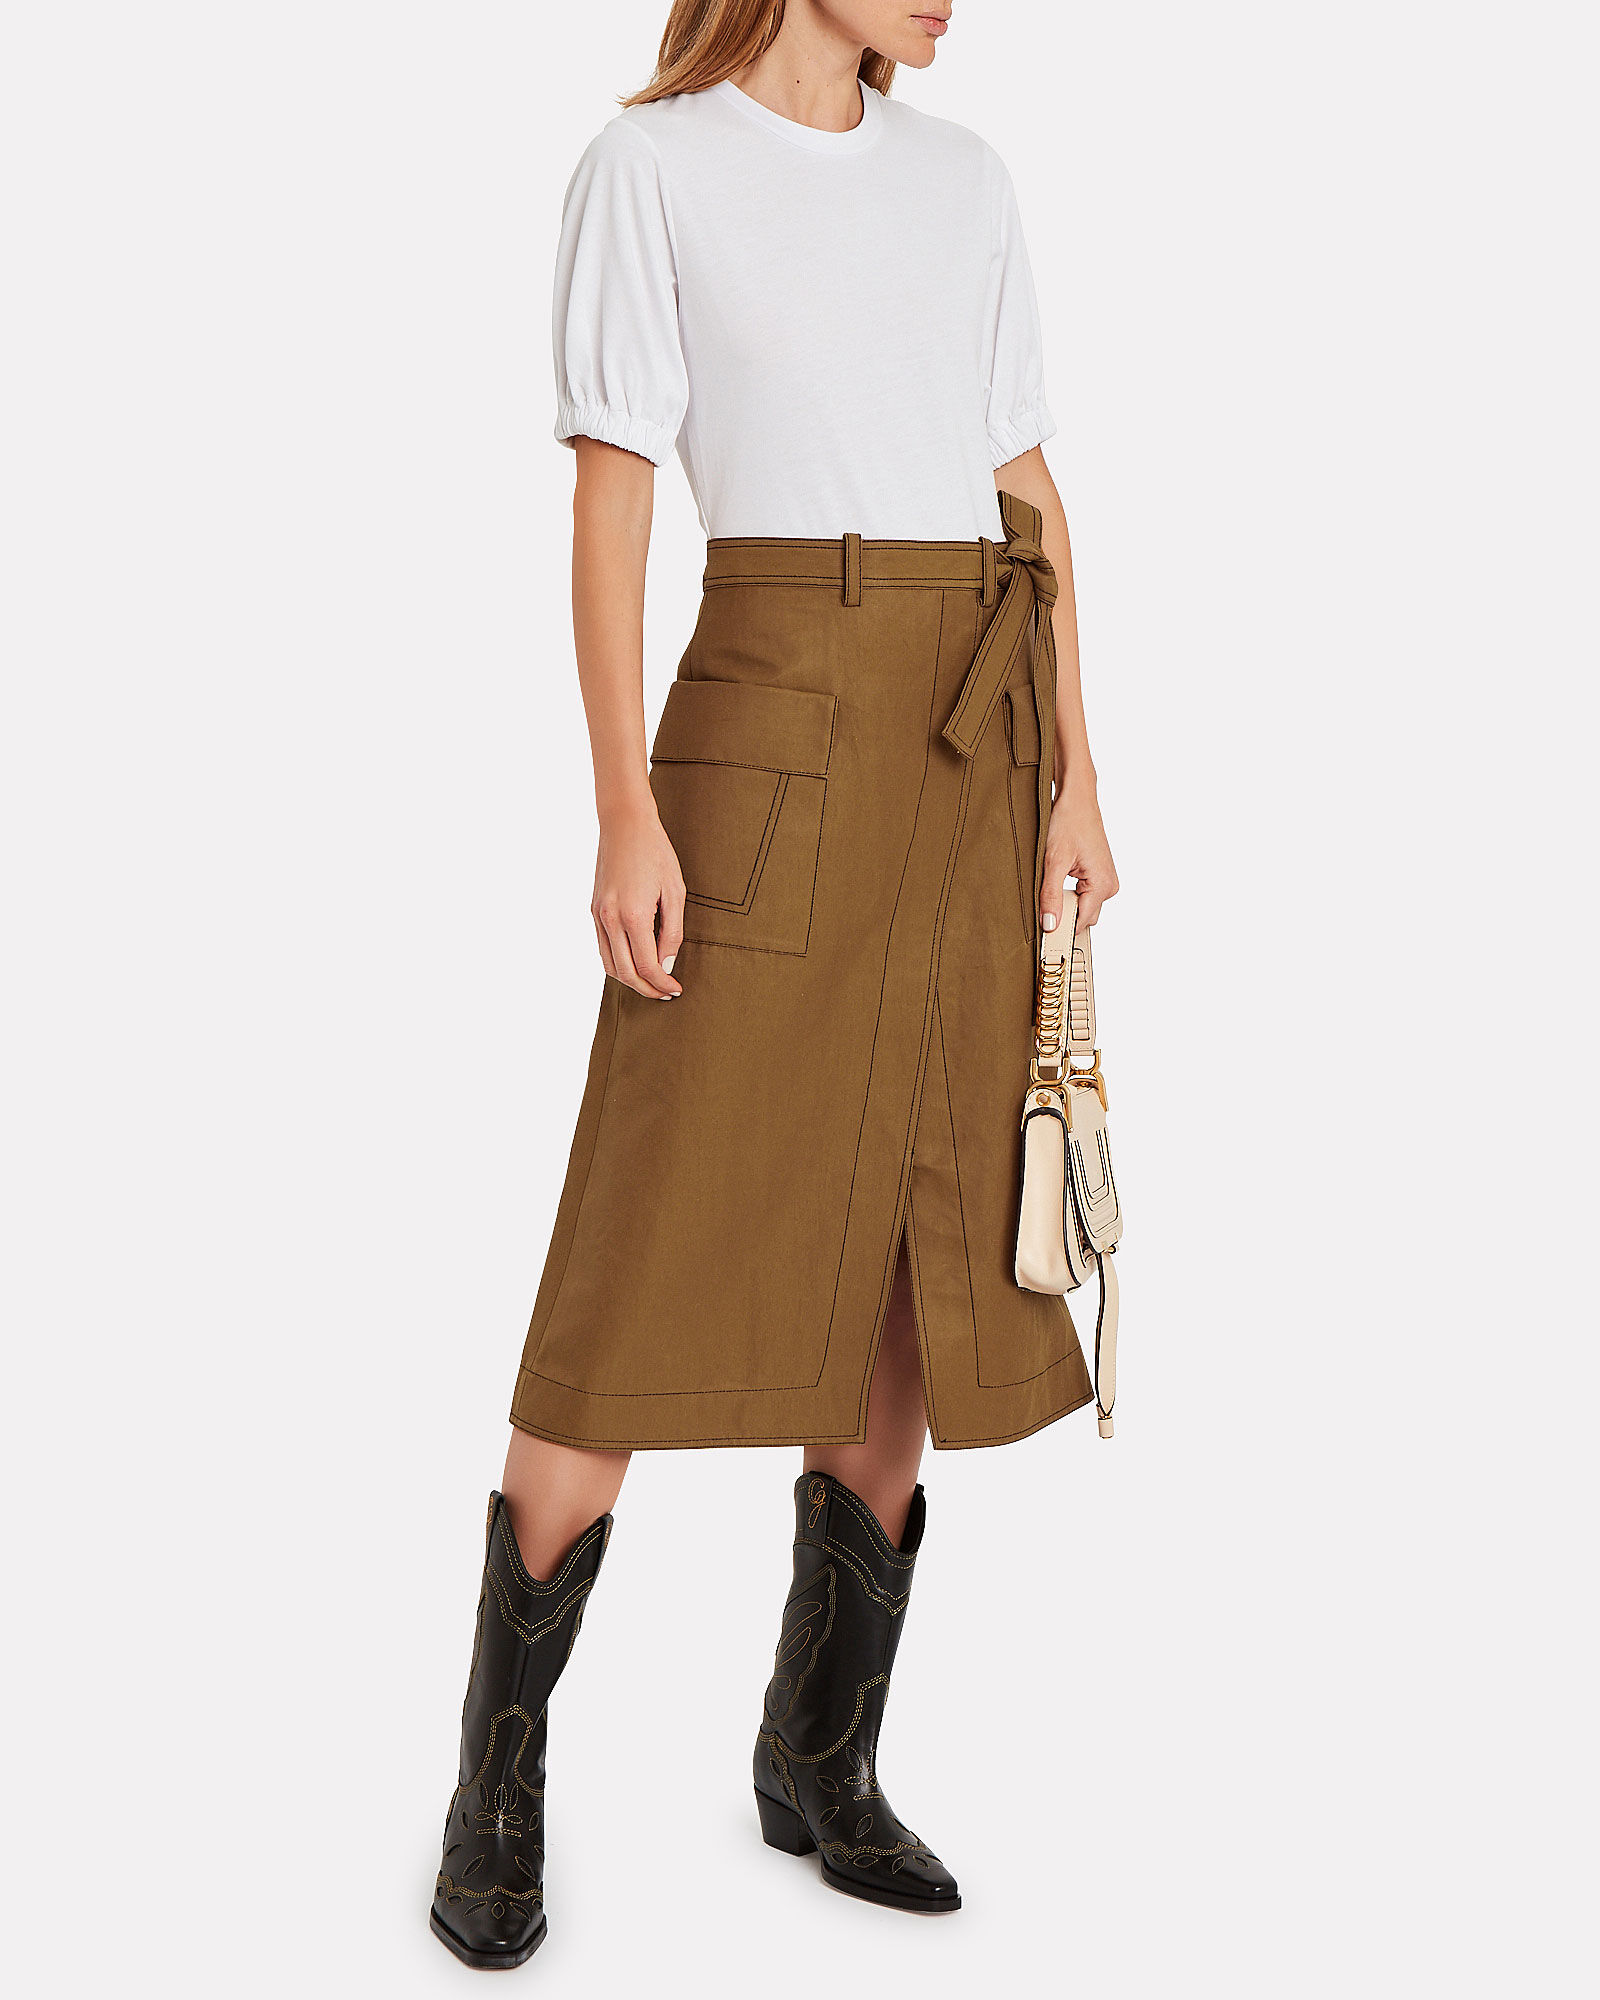 Topstitch Skirt T-Shirt Dress, WHITE/CAMEL, hi-res